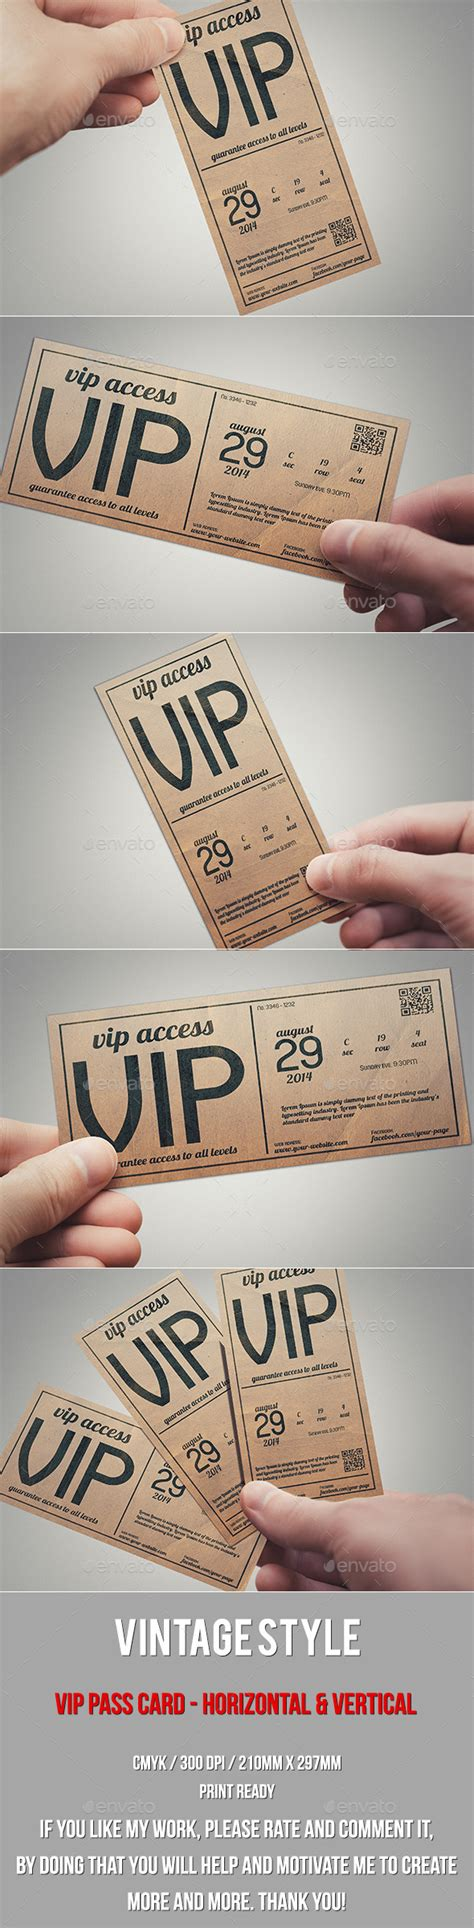 pass card template vintage style vip pass card by tzochko graphicriver